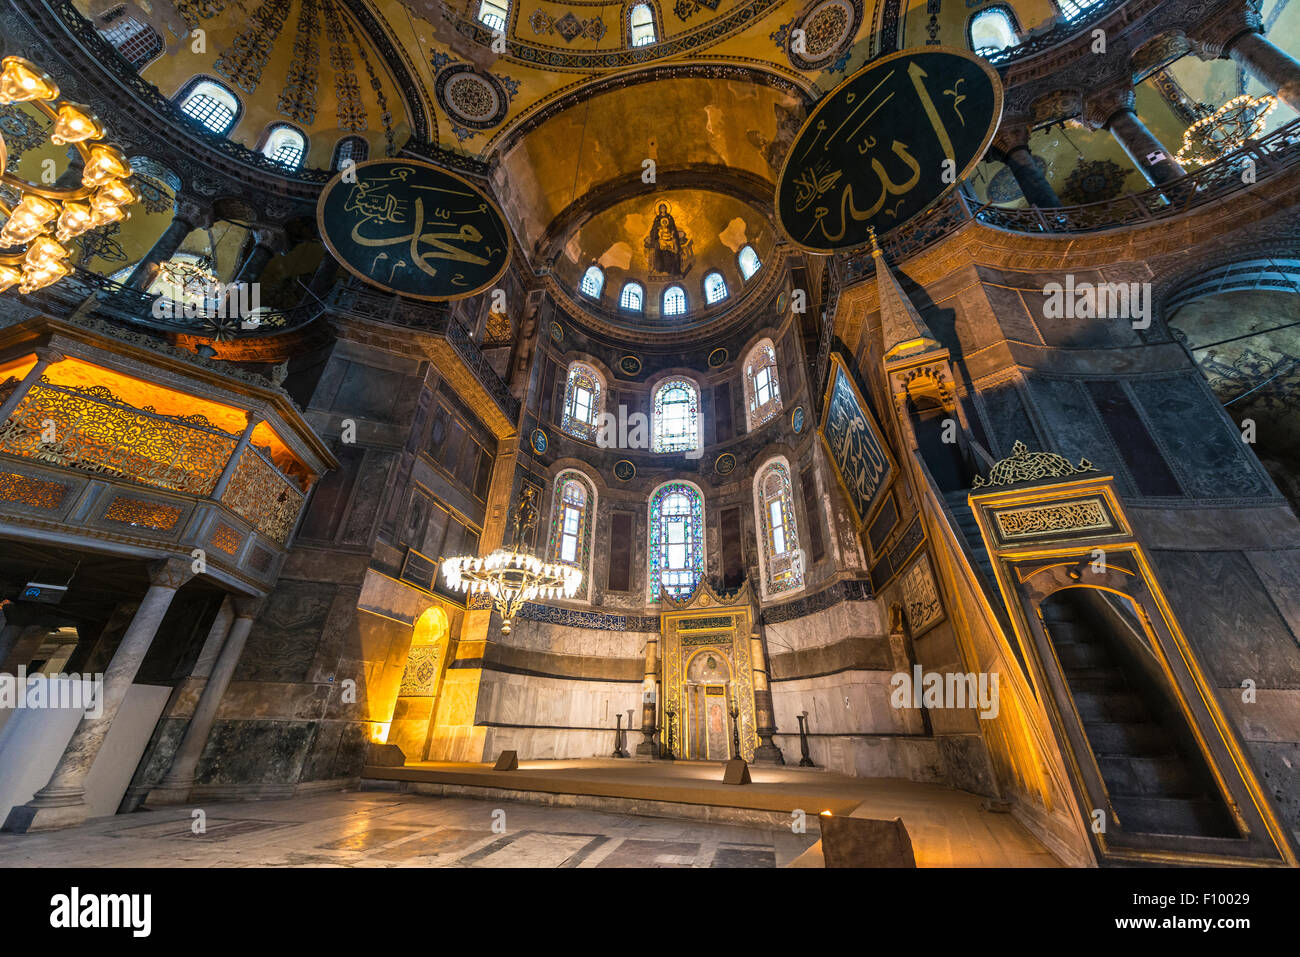 Main area of the Hagia Sophia, Ayasofya, interior, UNESCO World Heritage Site, European Side, Istanbul, Turkey - Stock Image